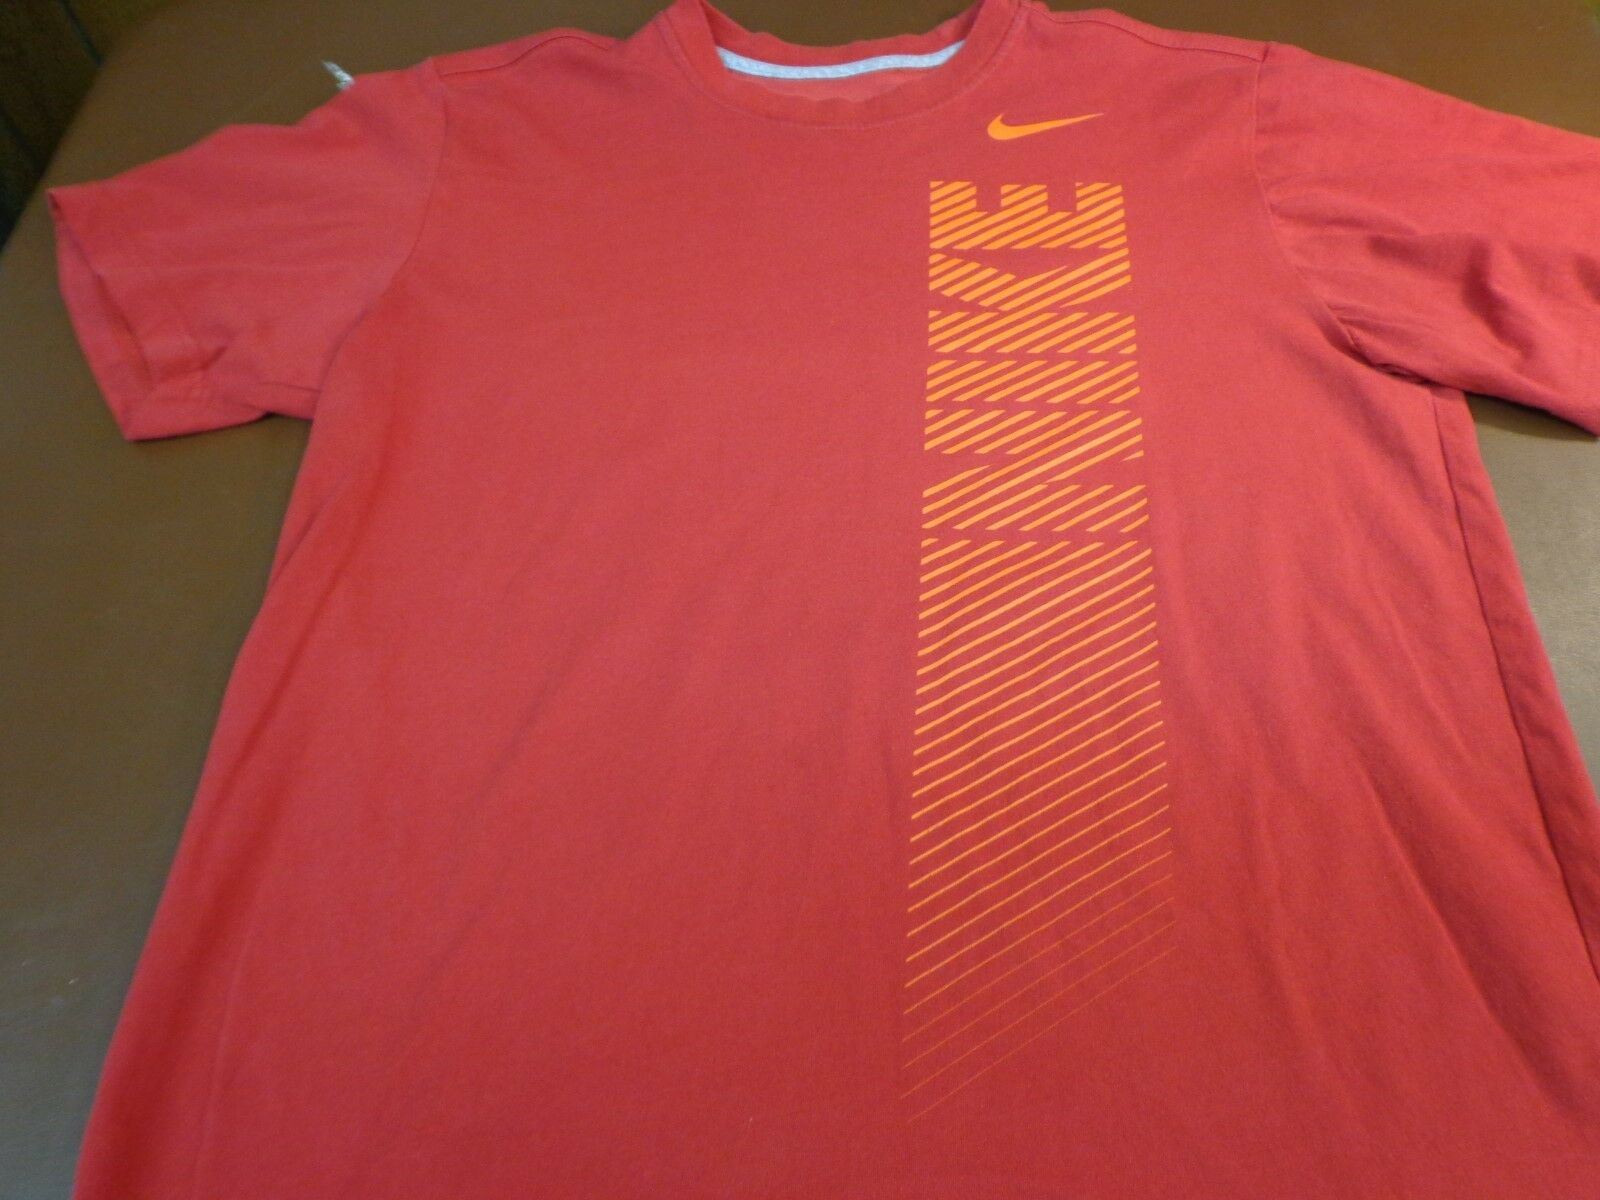 8644c1b323be ... Men s Red Nike Dri Fit T-Shirt Size Large Tee o8 Men s Red Nike Dri Fit  T-Shirt Size Large Tee o8 Men s Red Nike Dri Fit T-Shirt Size Large Tee o8